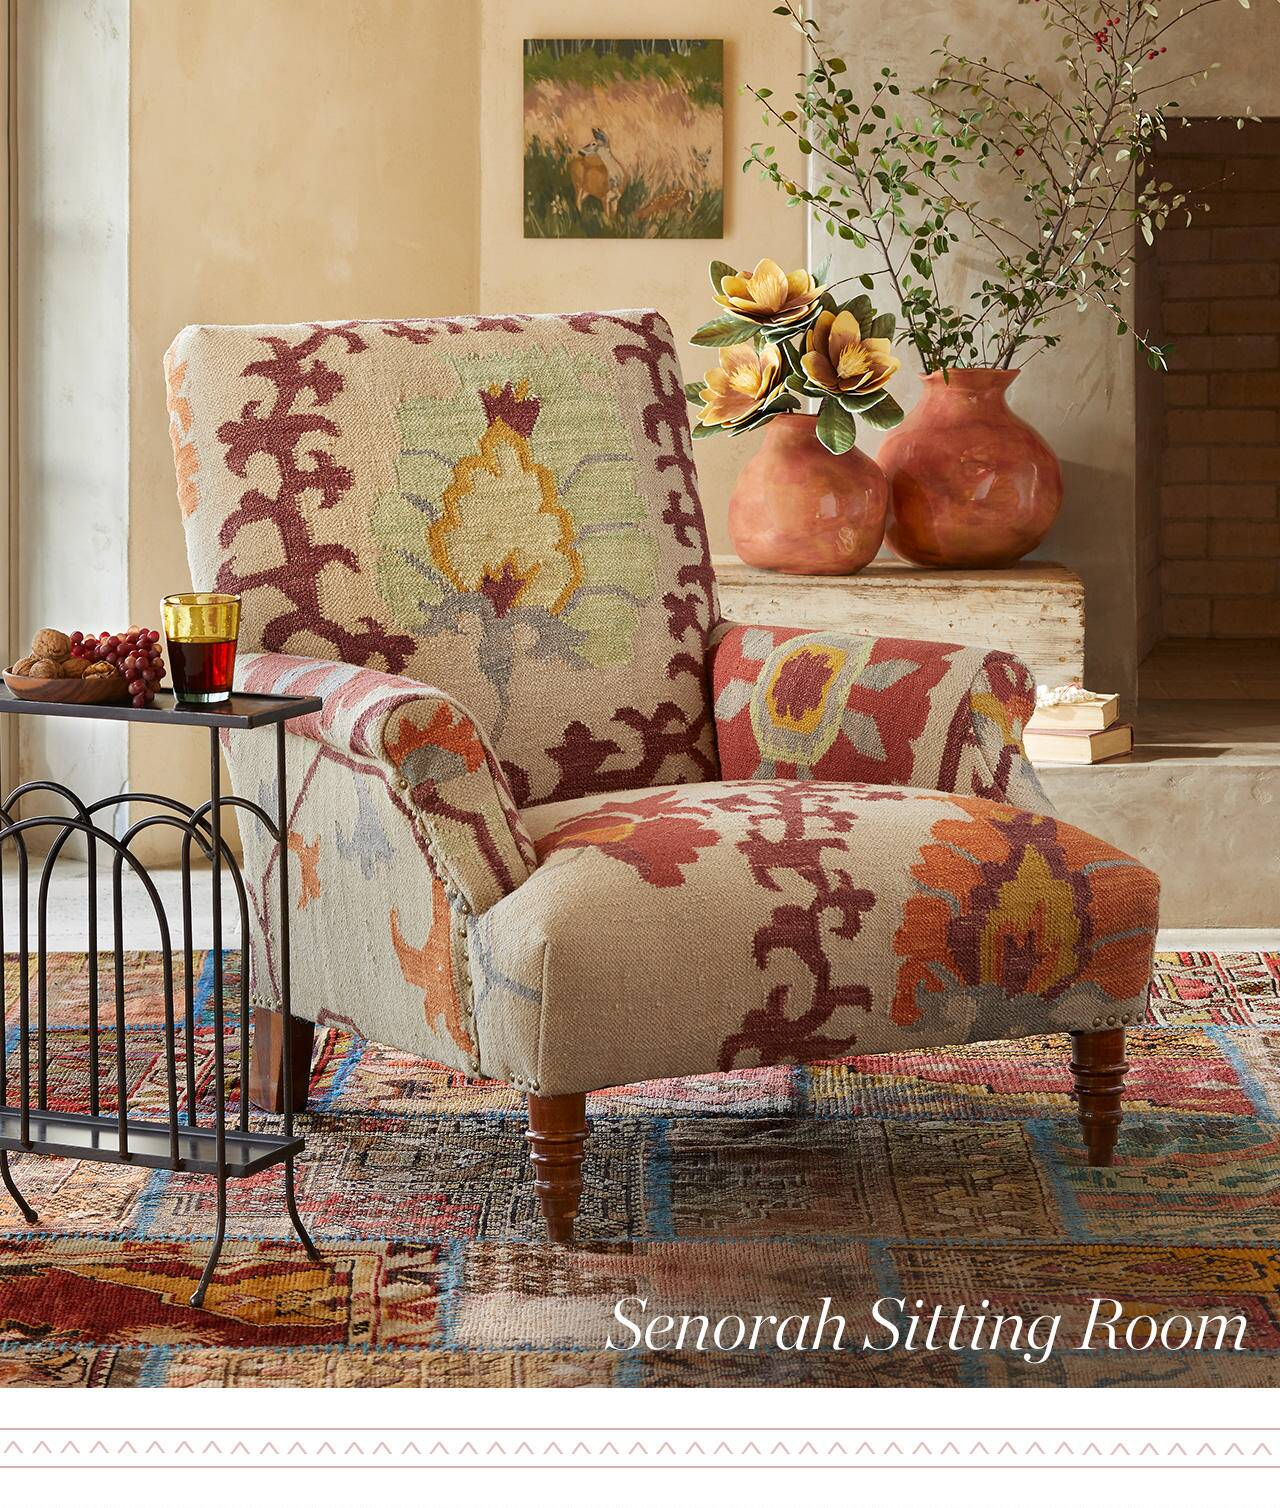 Senorah Sitting Room